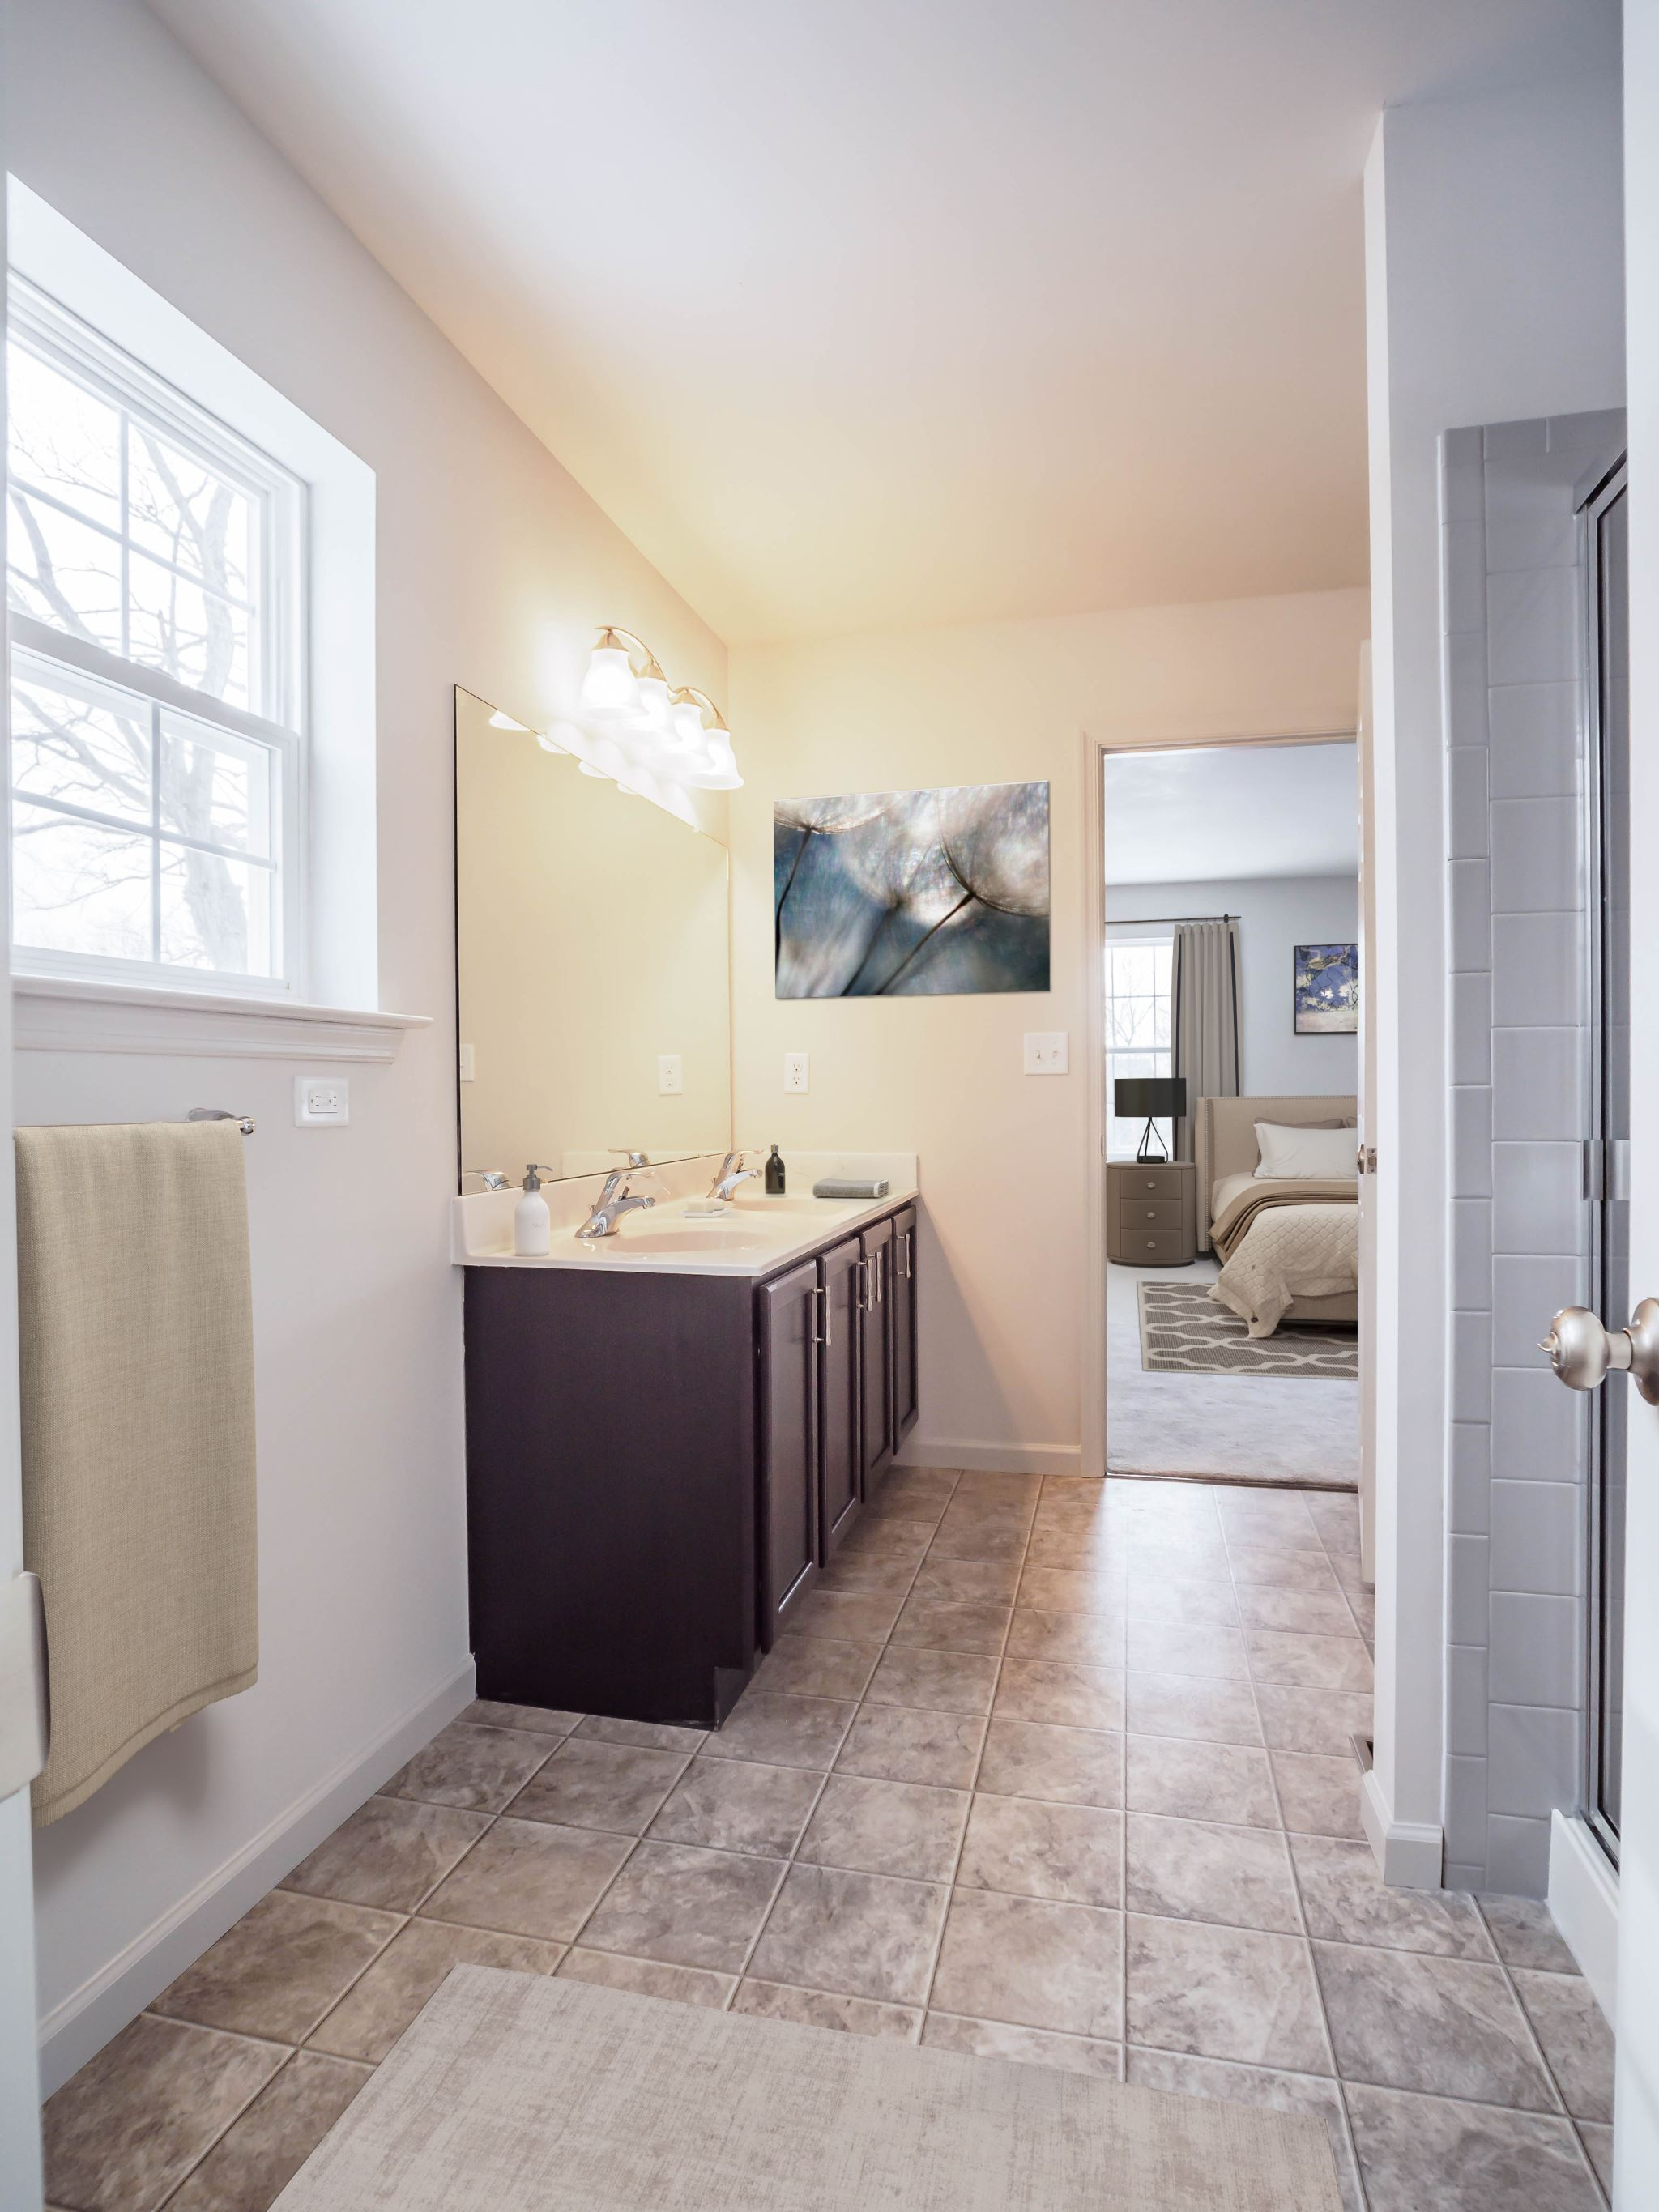 Bathroom featured in the Rowley By TH Properties in Philadelphia, PA